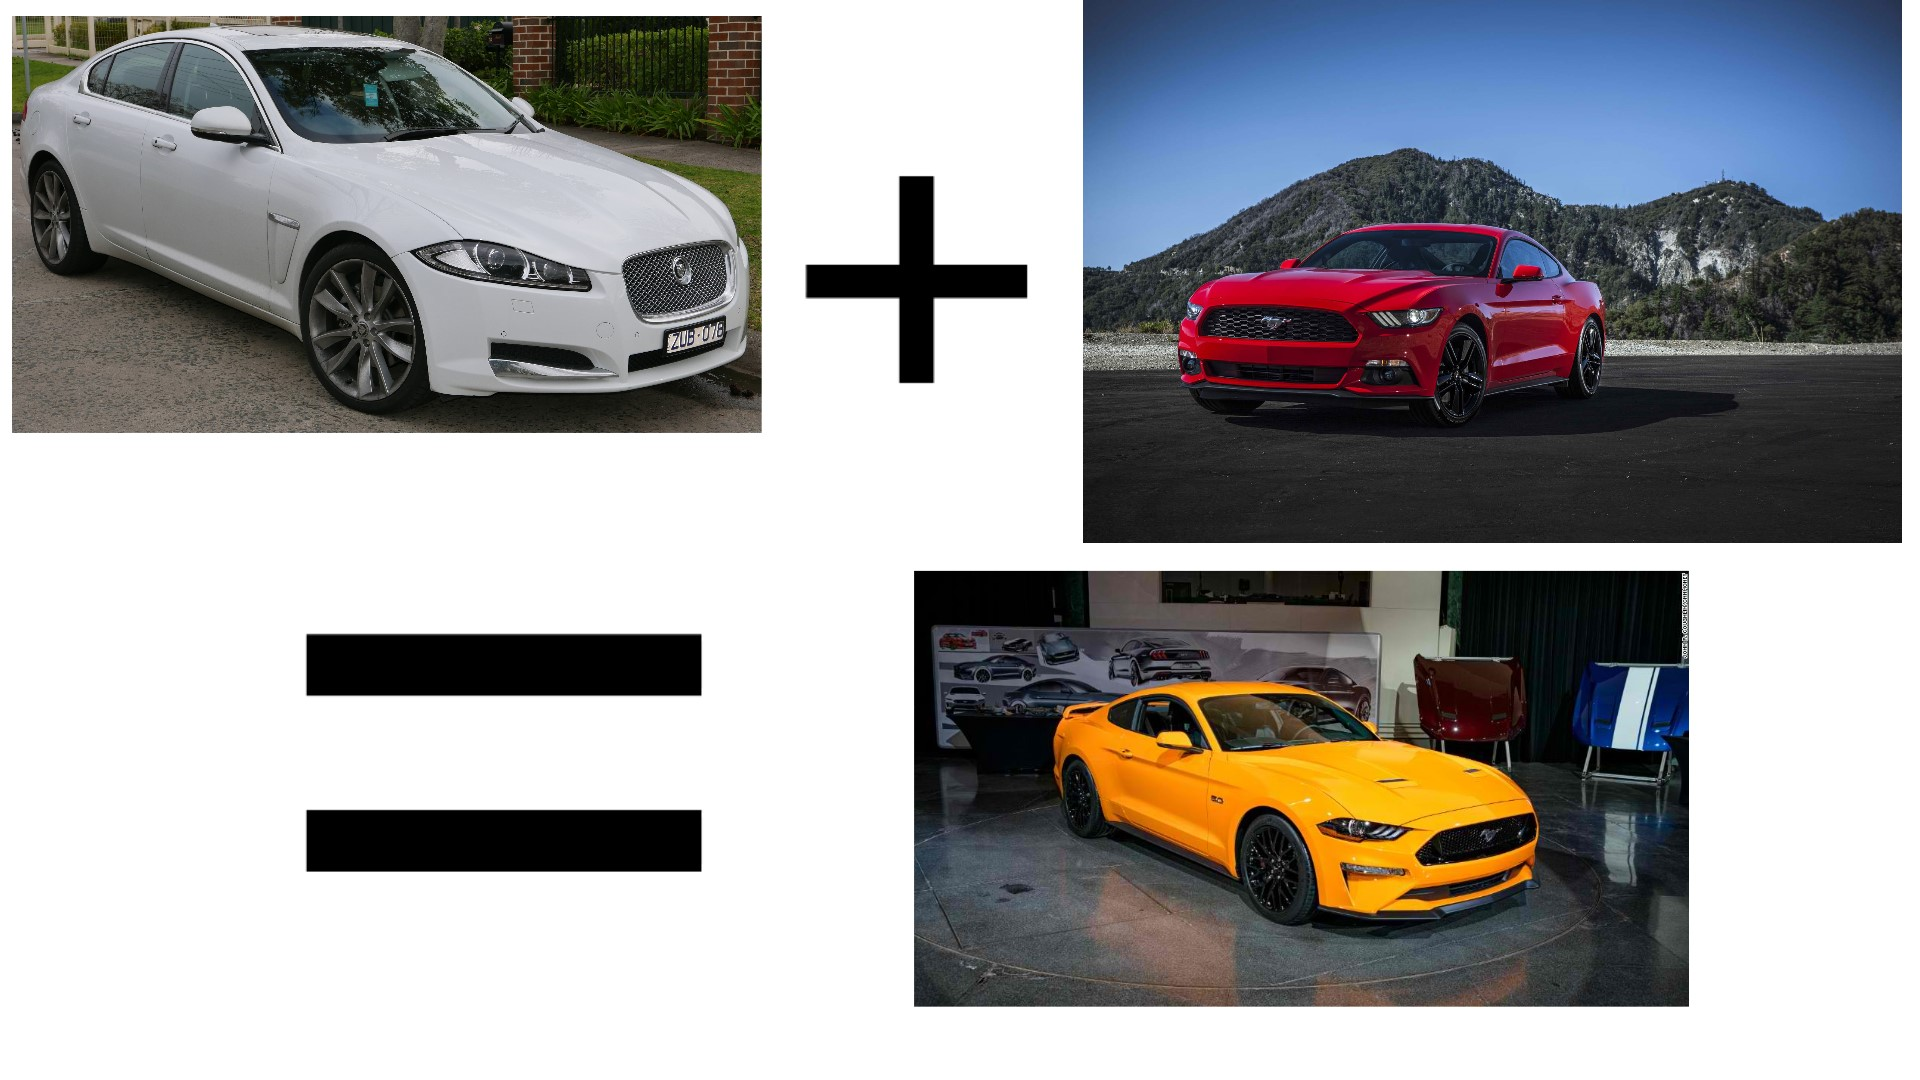 Ford Mustang Gt Vs Jaguar Xf